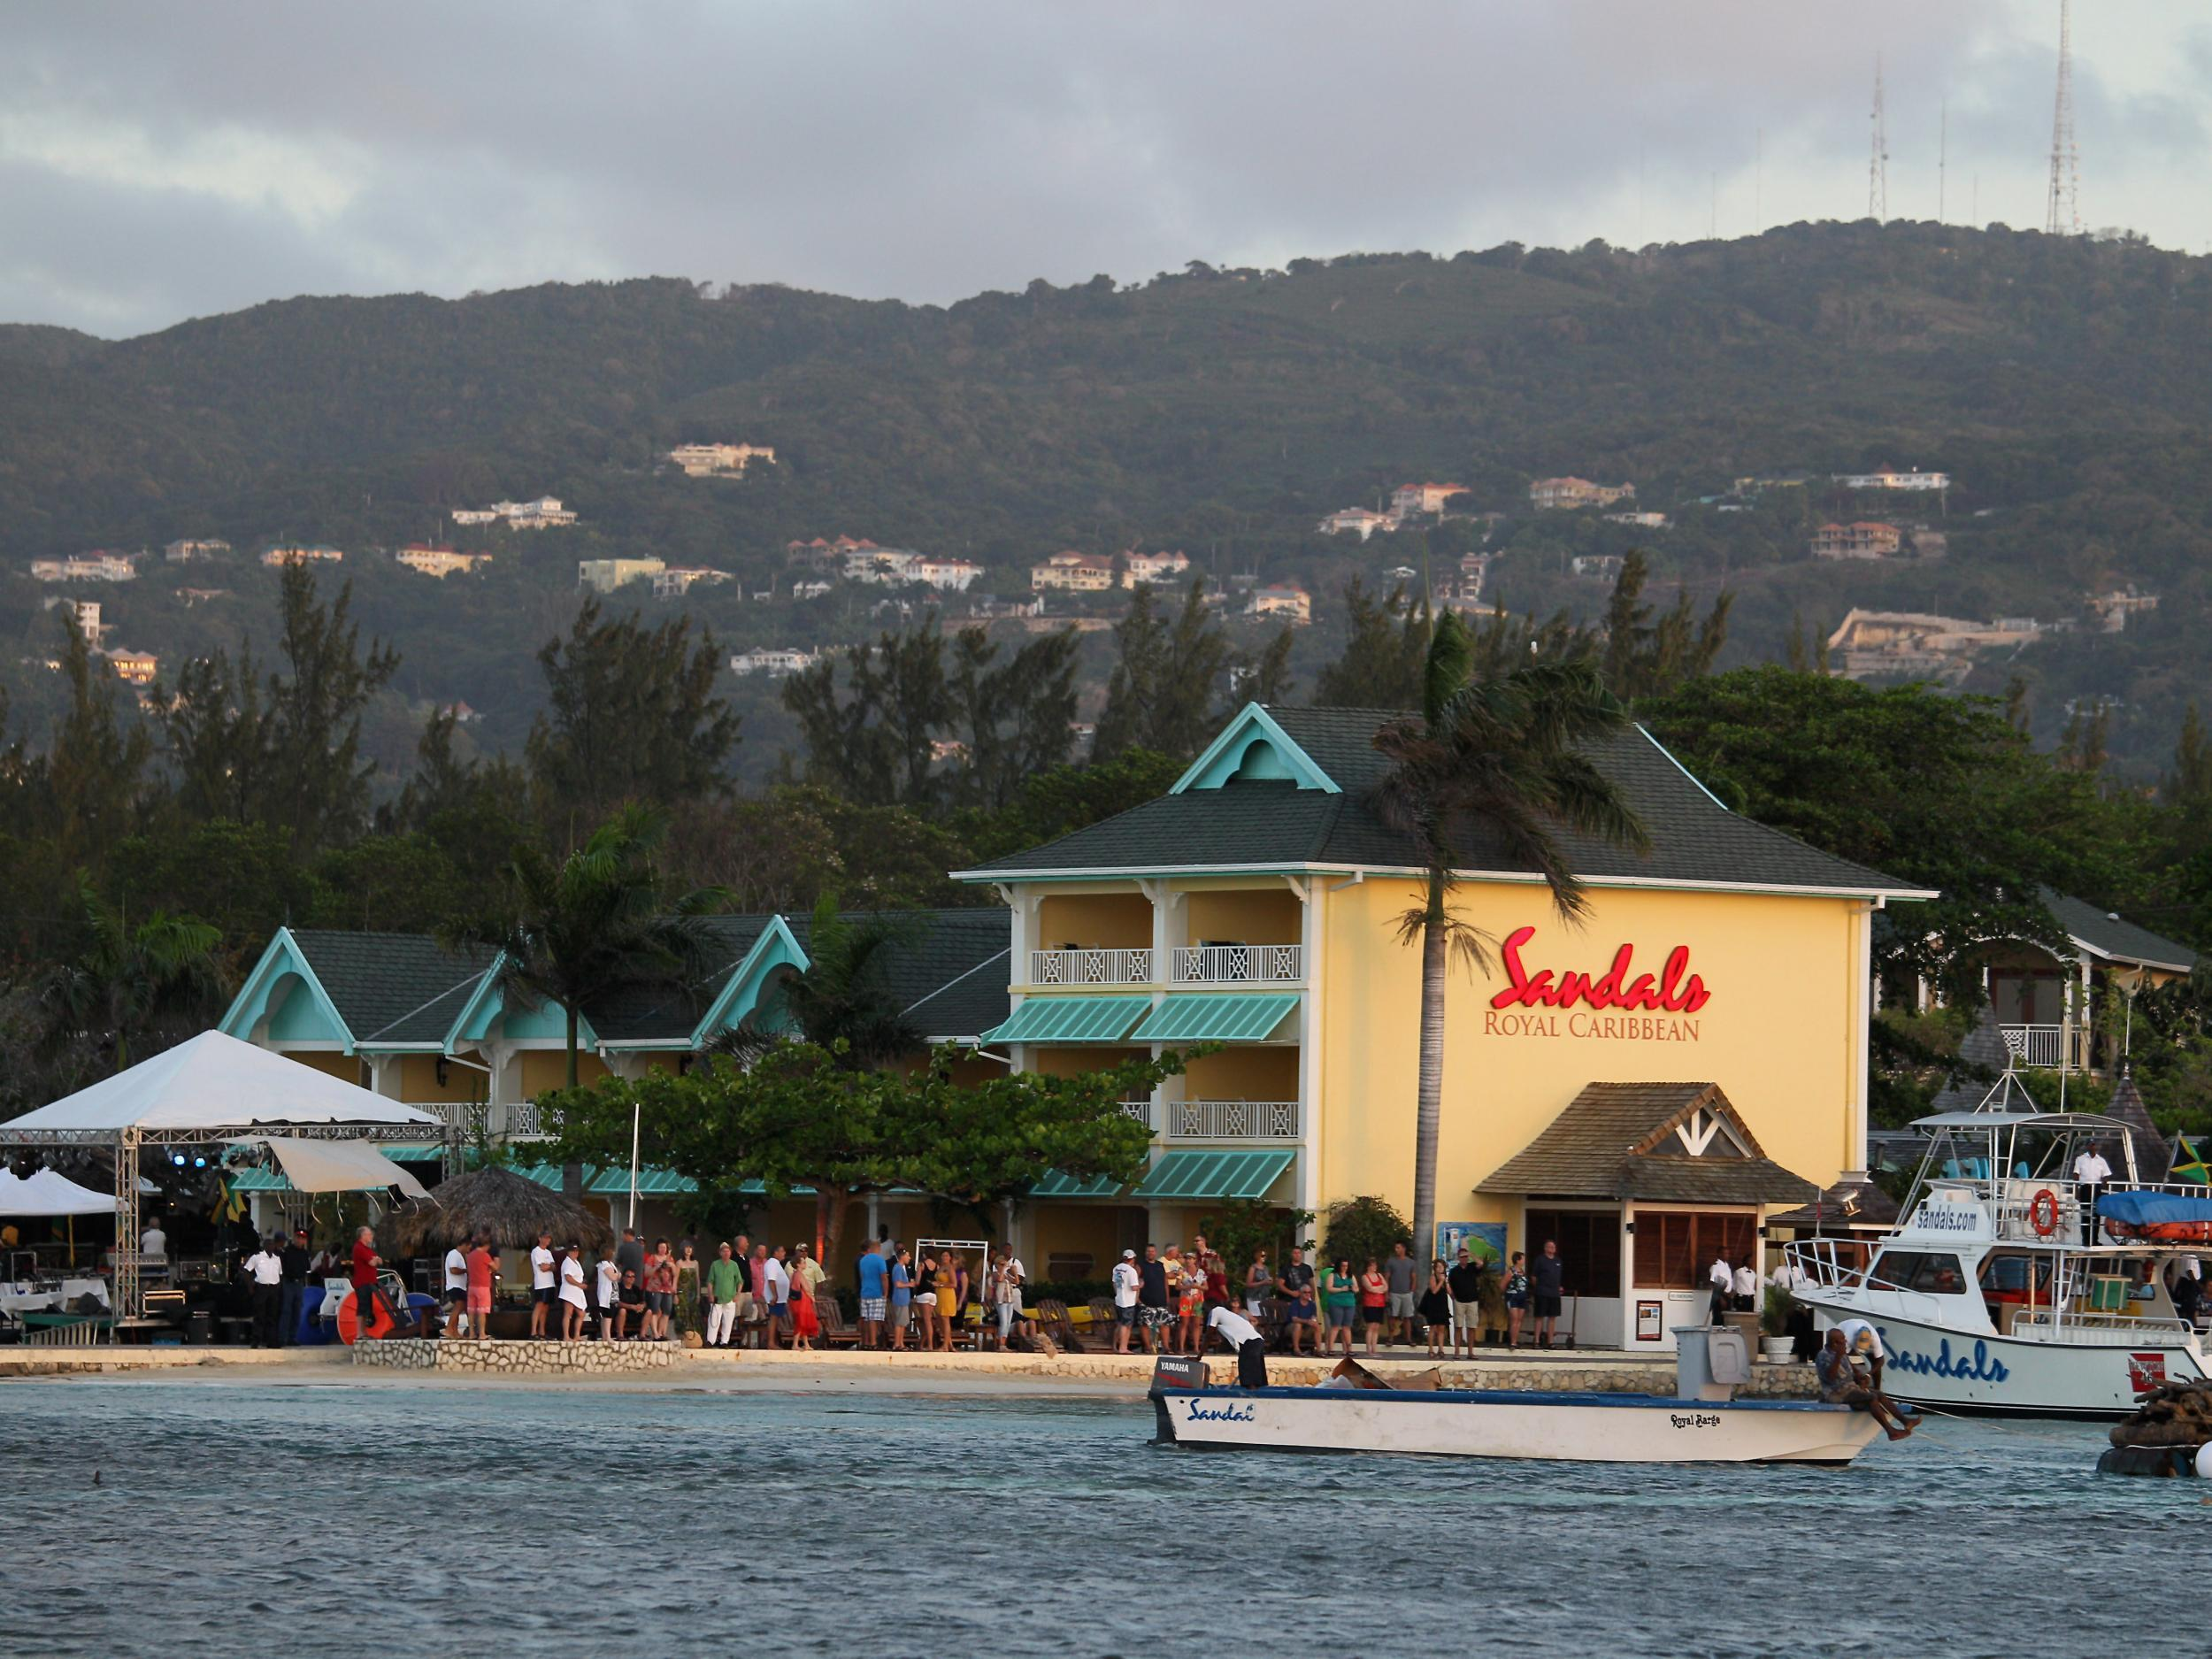 Jamaica 'safe' despite upsurge in violence and state of emergency, tourism minister insists